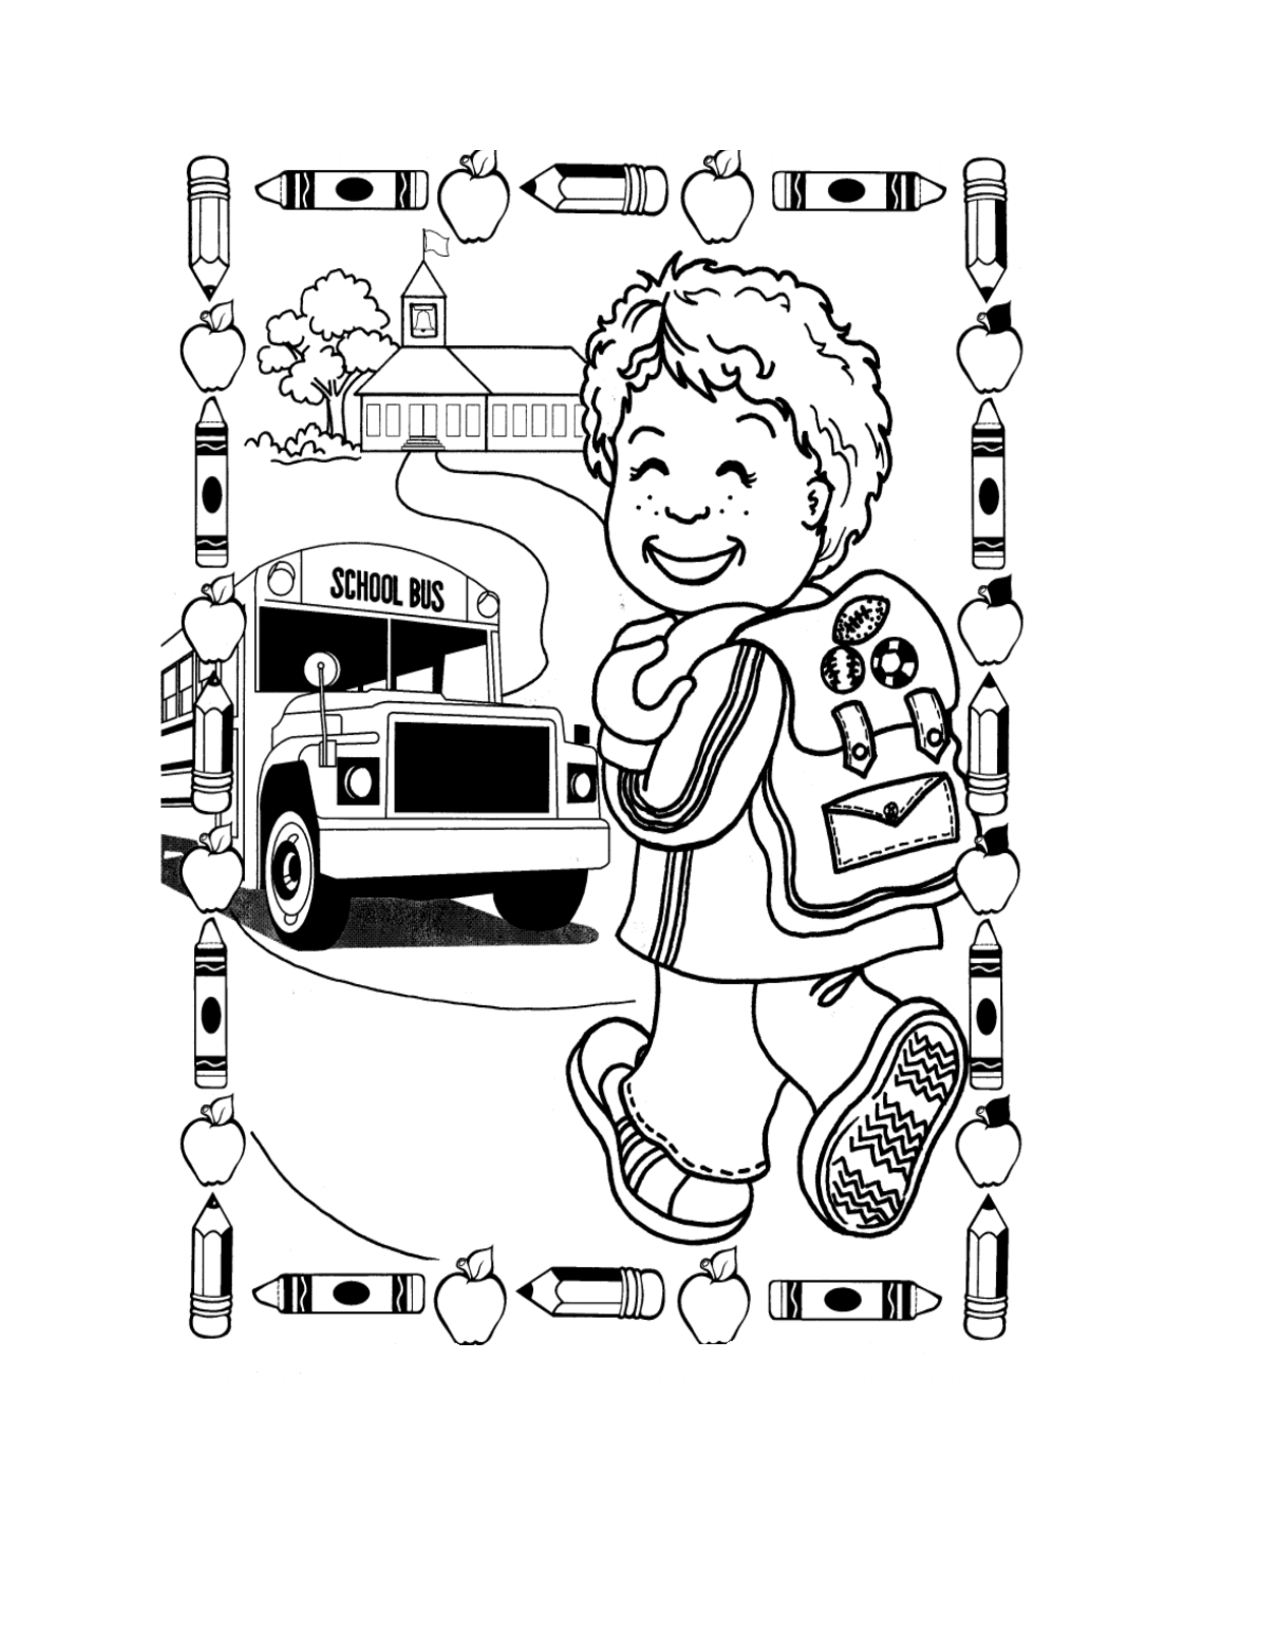 cooperation coloring pages kids - photo#14